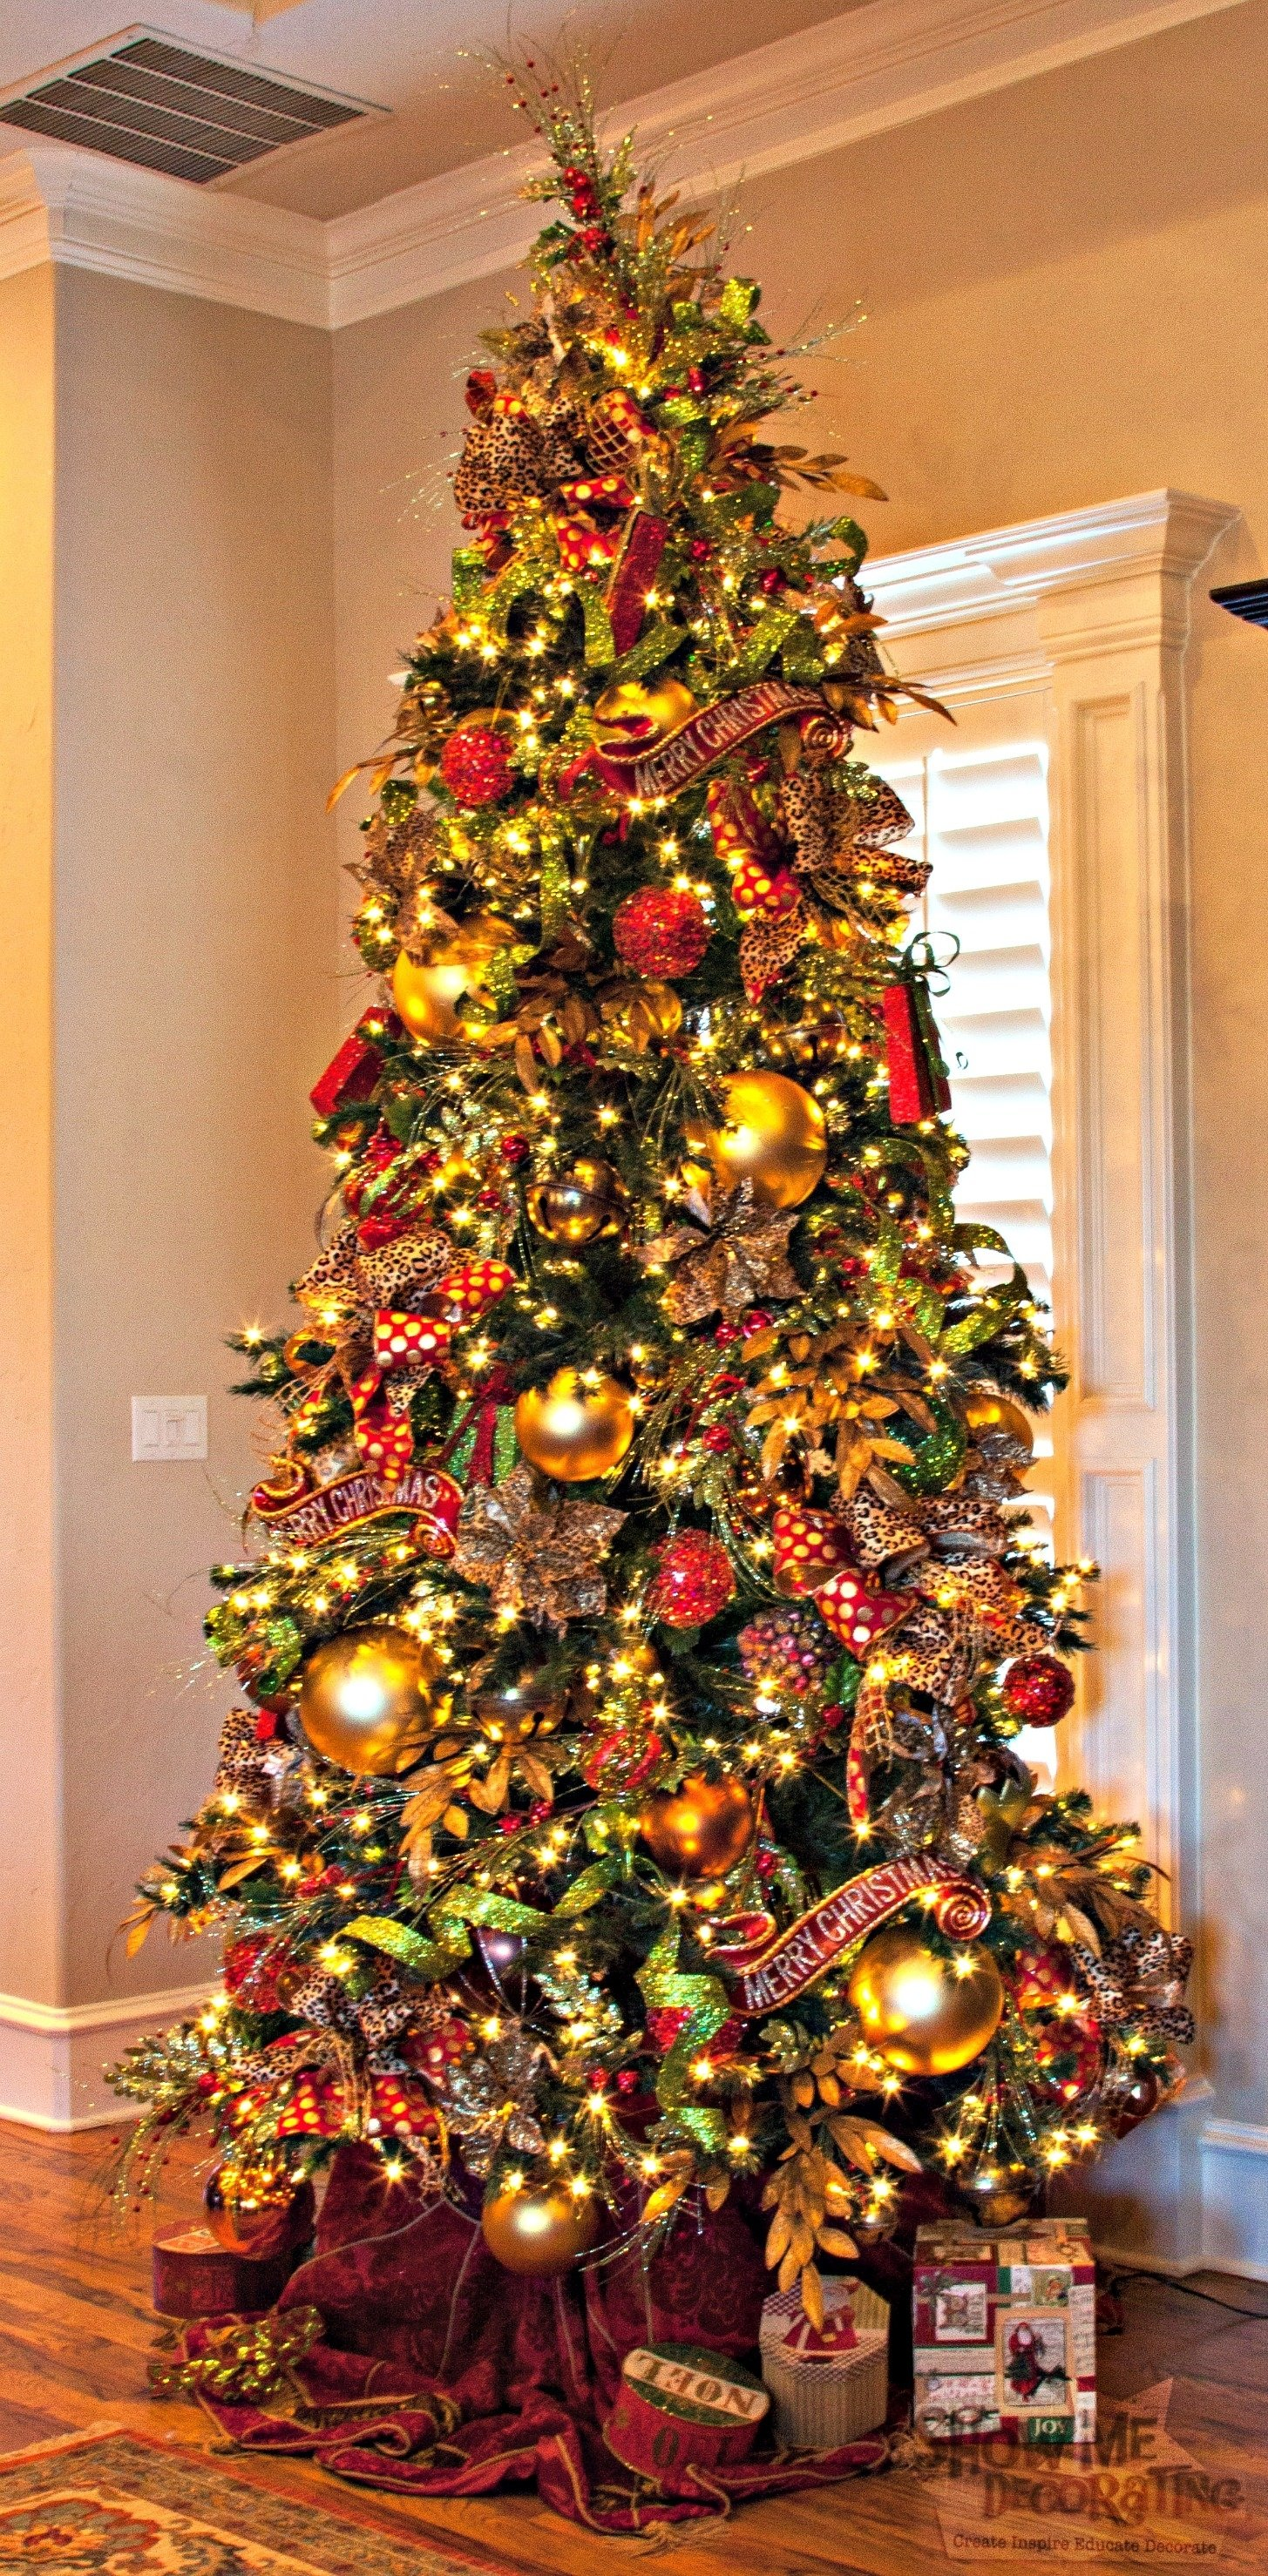 10 Stunning Red Green And Gold Christmas Tree Ideas home in the making create white and gold christmas tree red green 2021